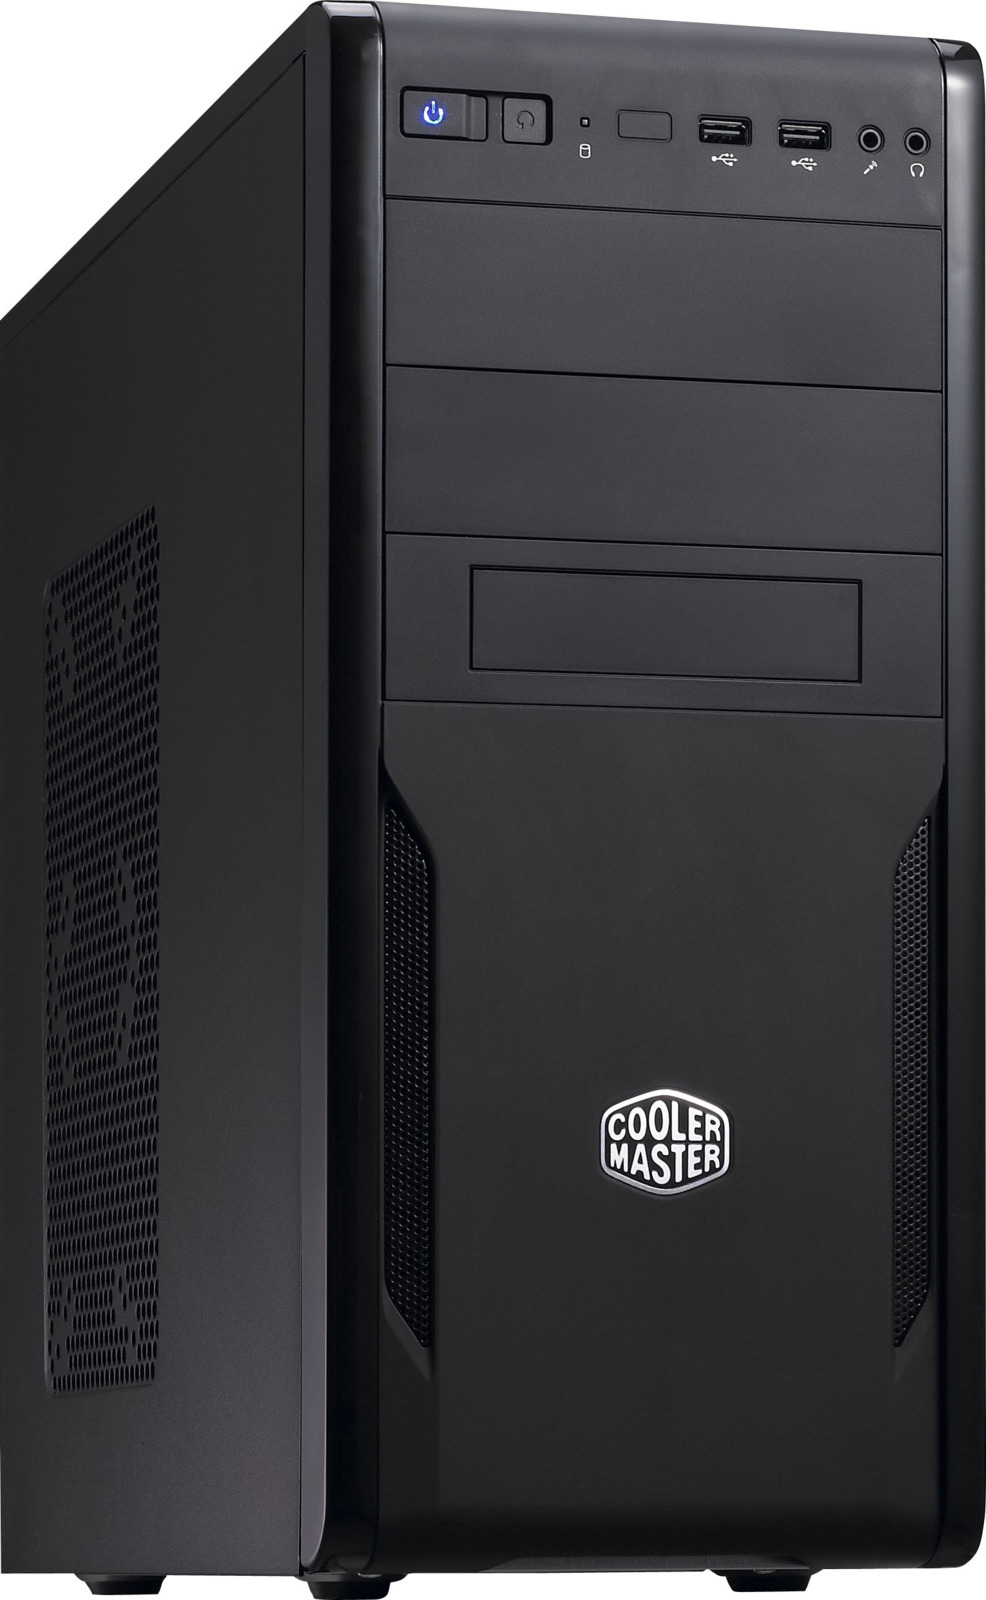 Компьютерный корпус Cooler Master CM Force 251, черный все цены